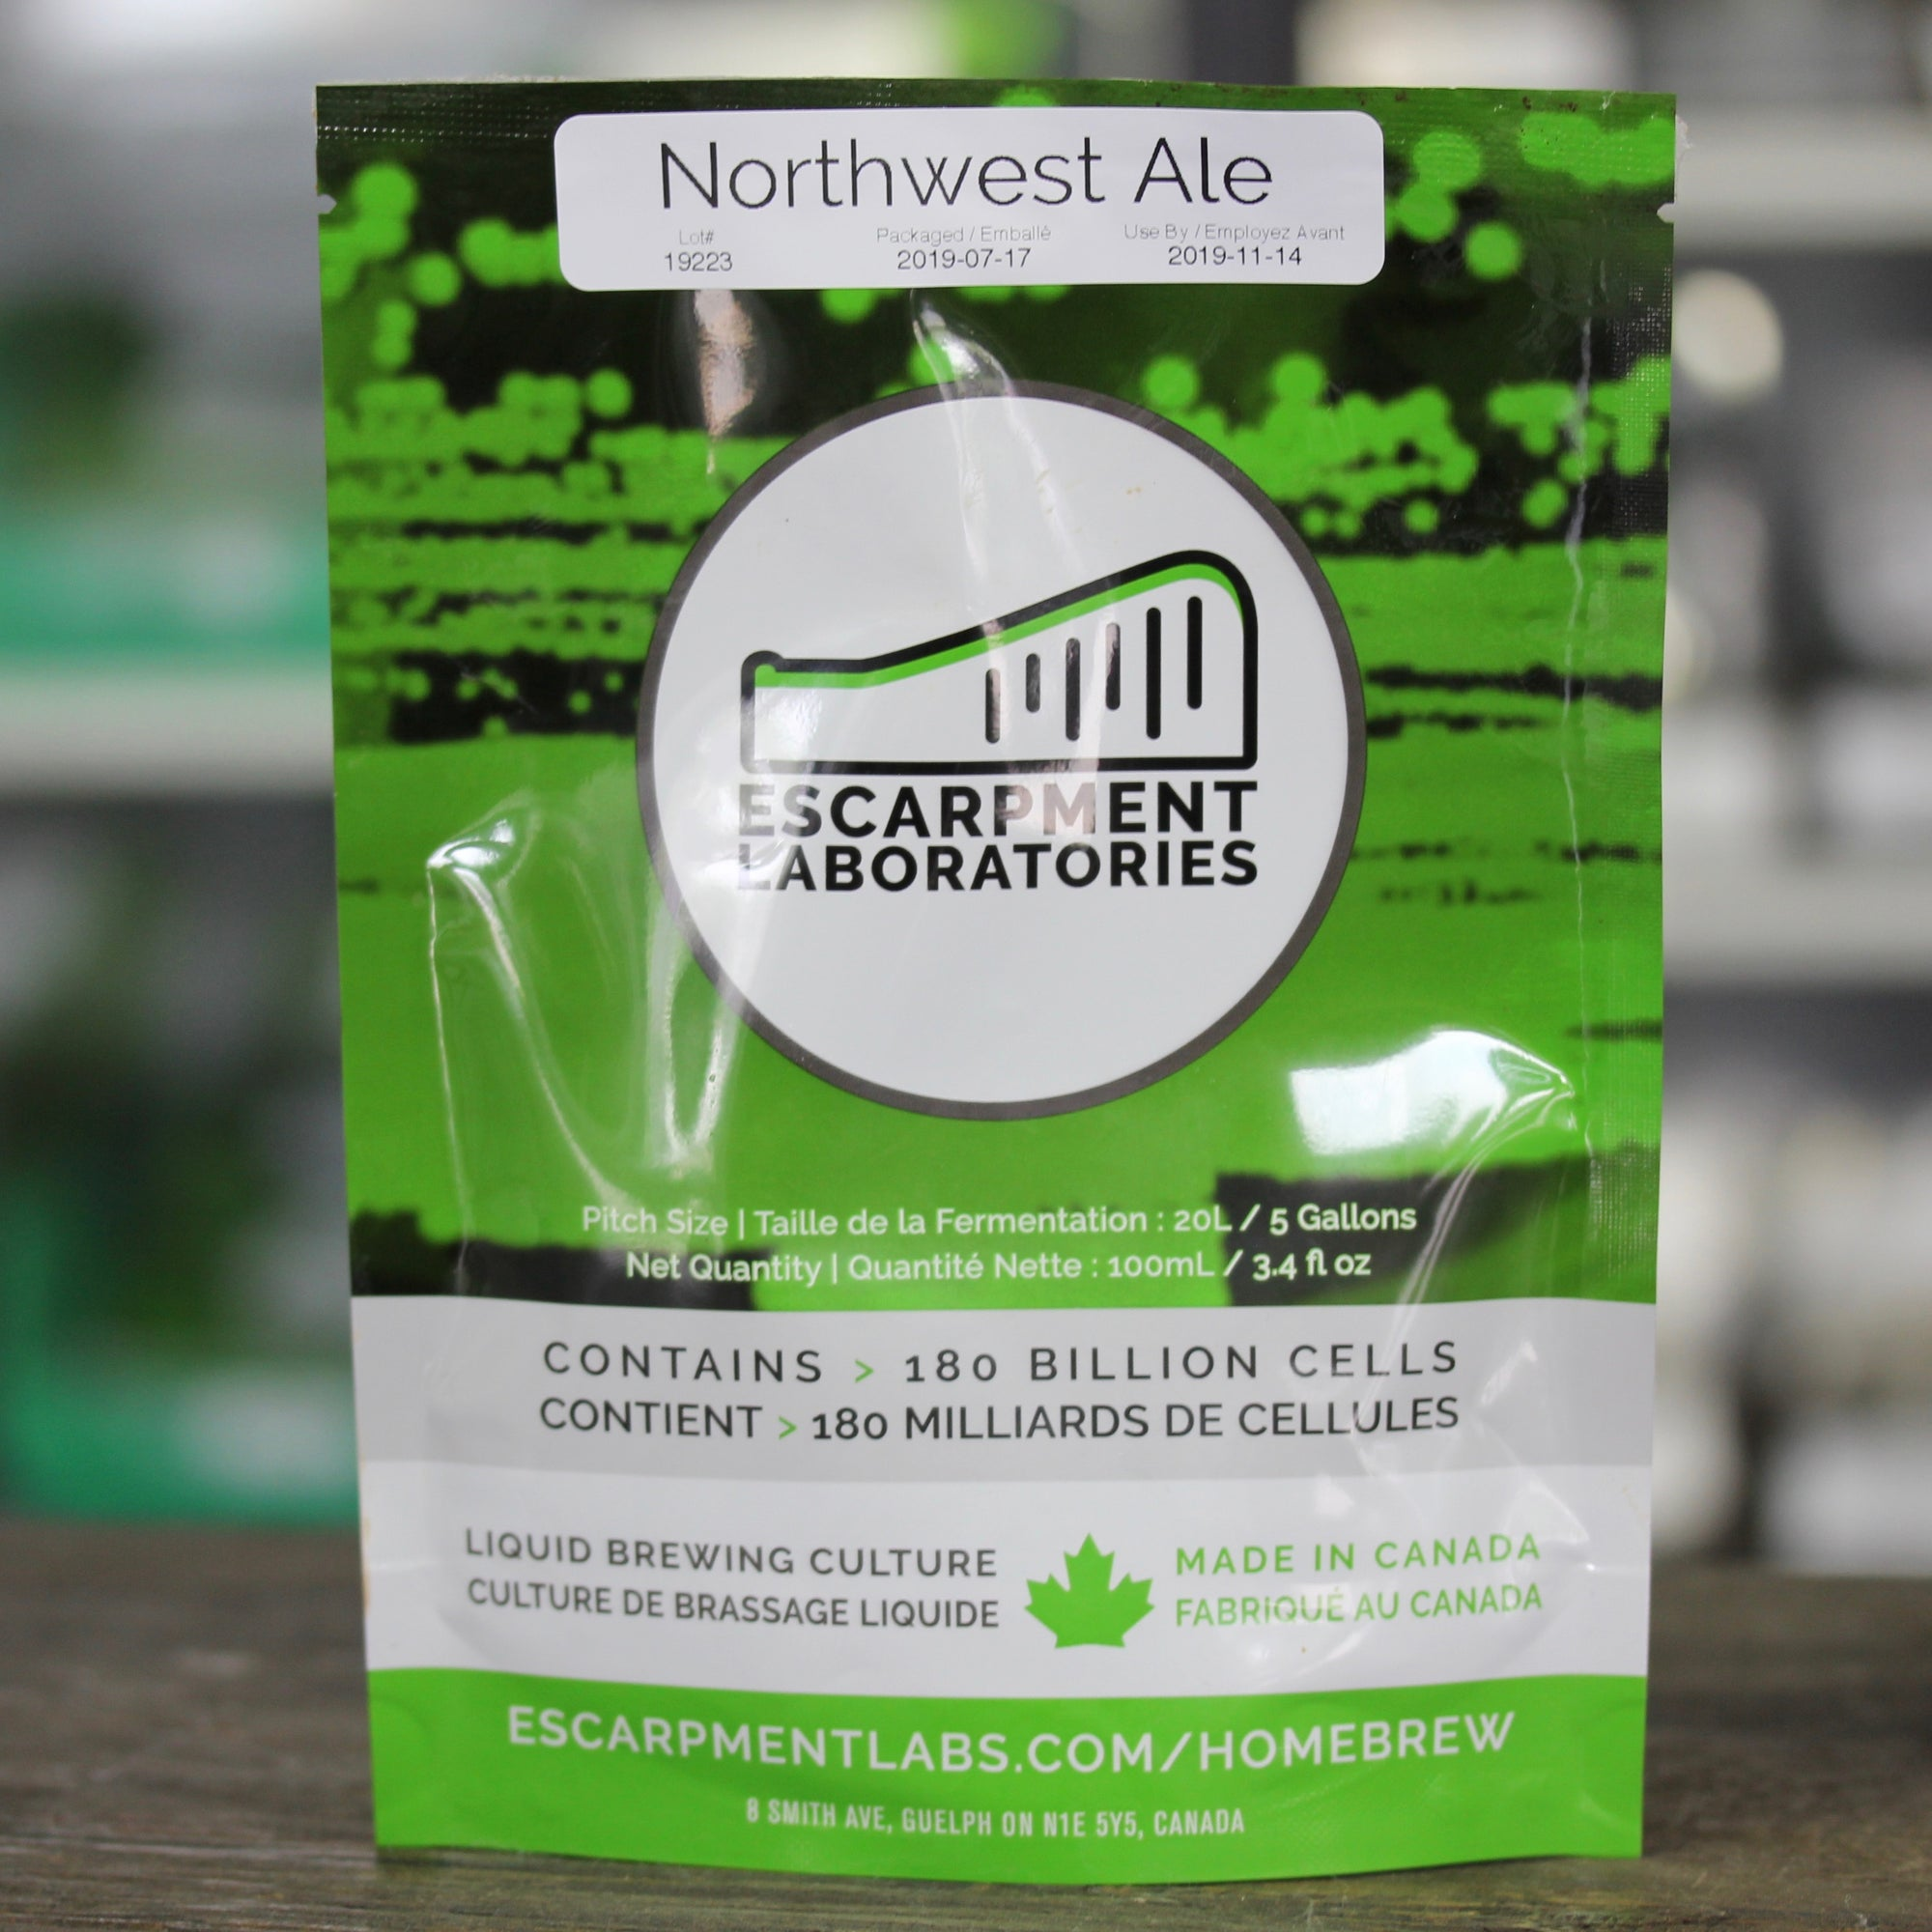 Northwest Ale - Escarpment Labs